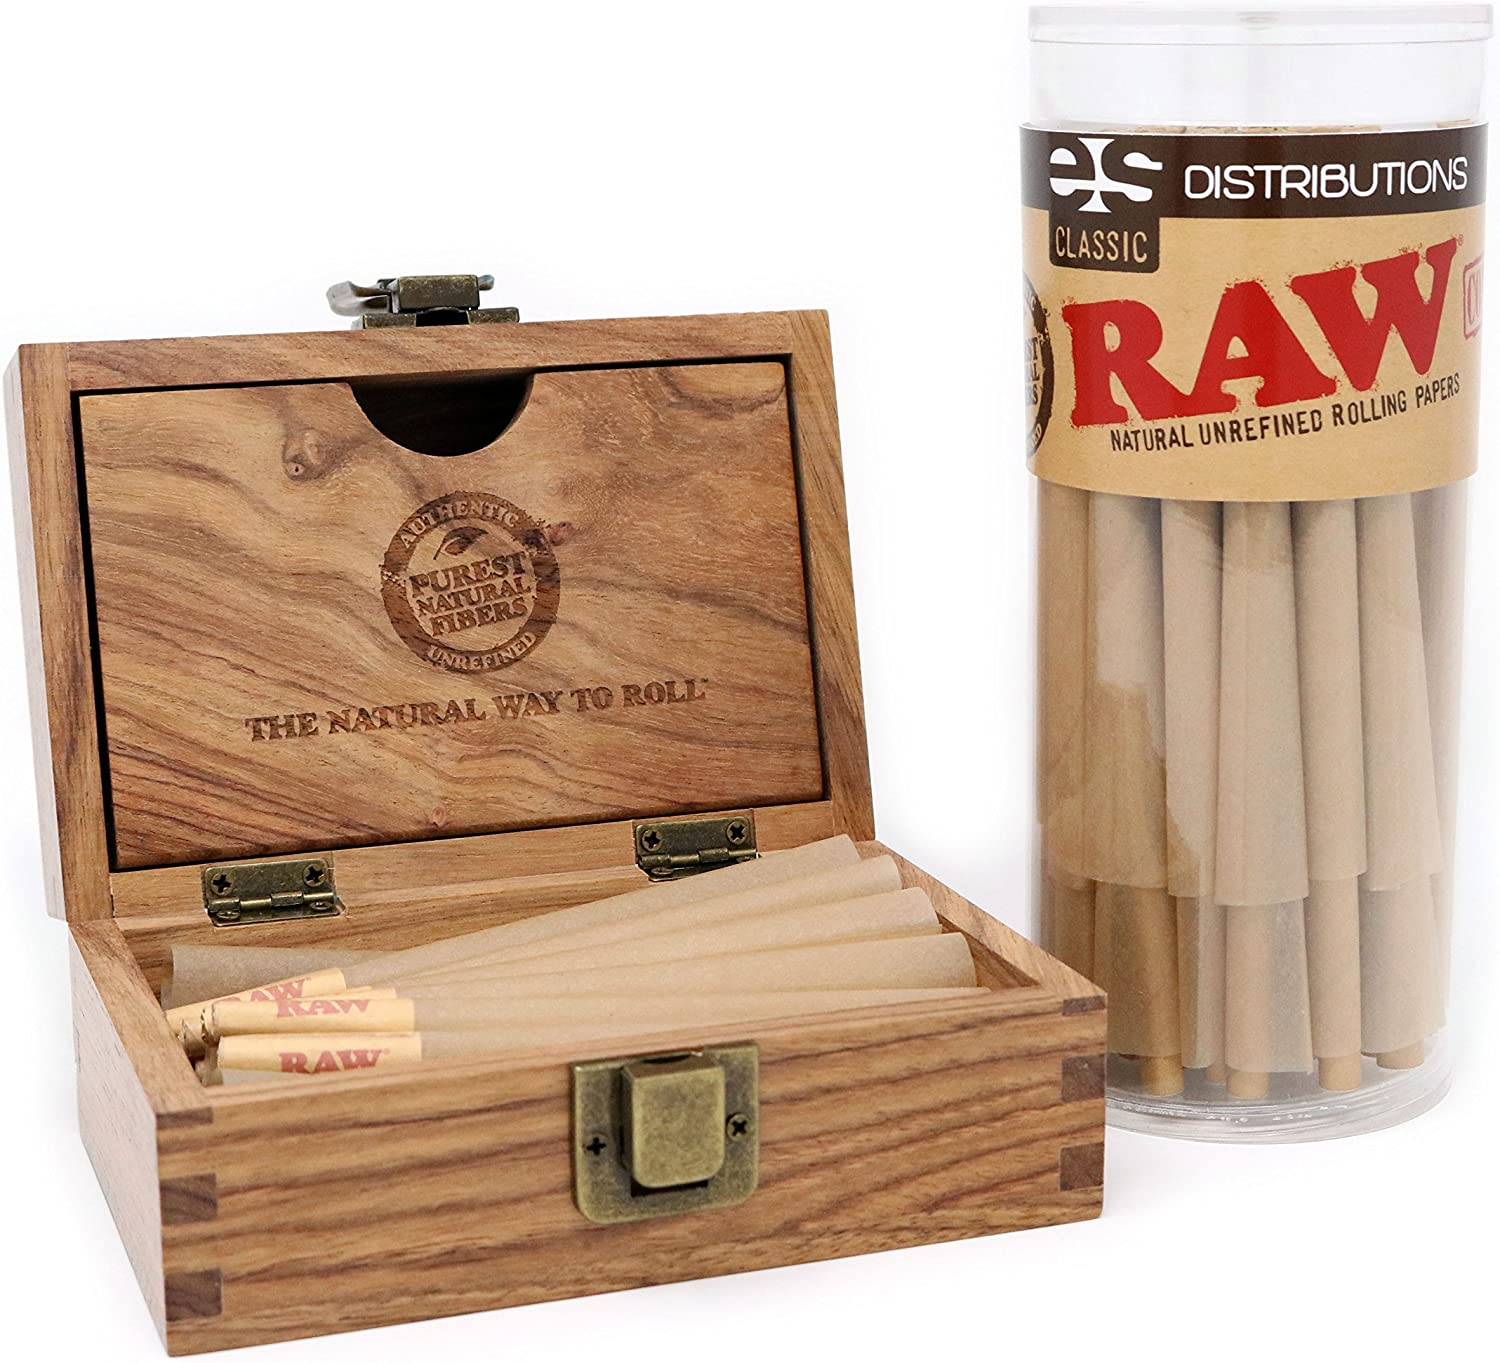 Packs King Size Cones and Smaller!!! 1 RAW Natural Wood Poking Stick Size Small